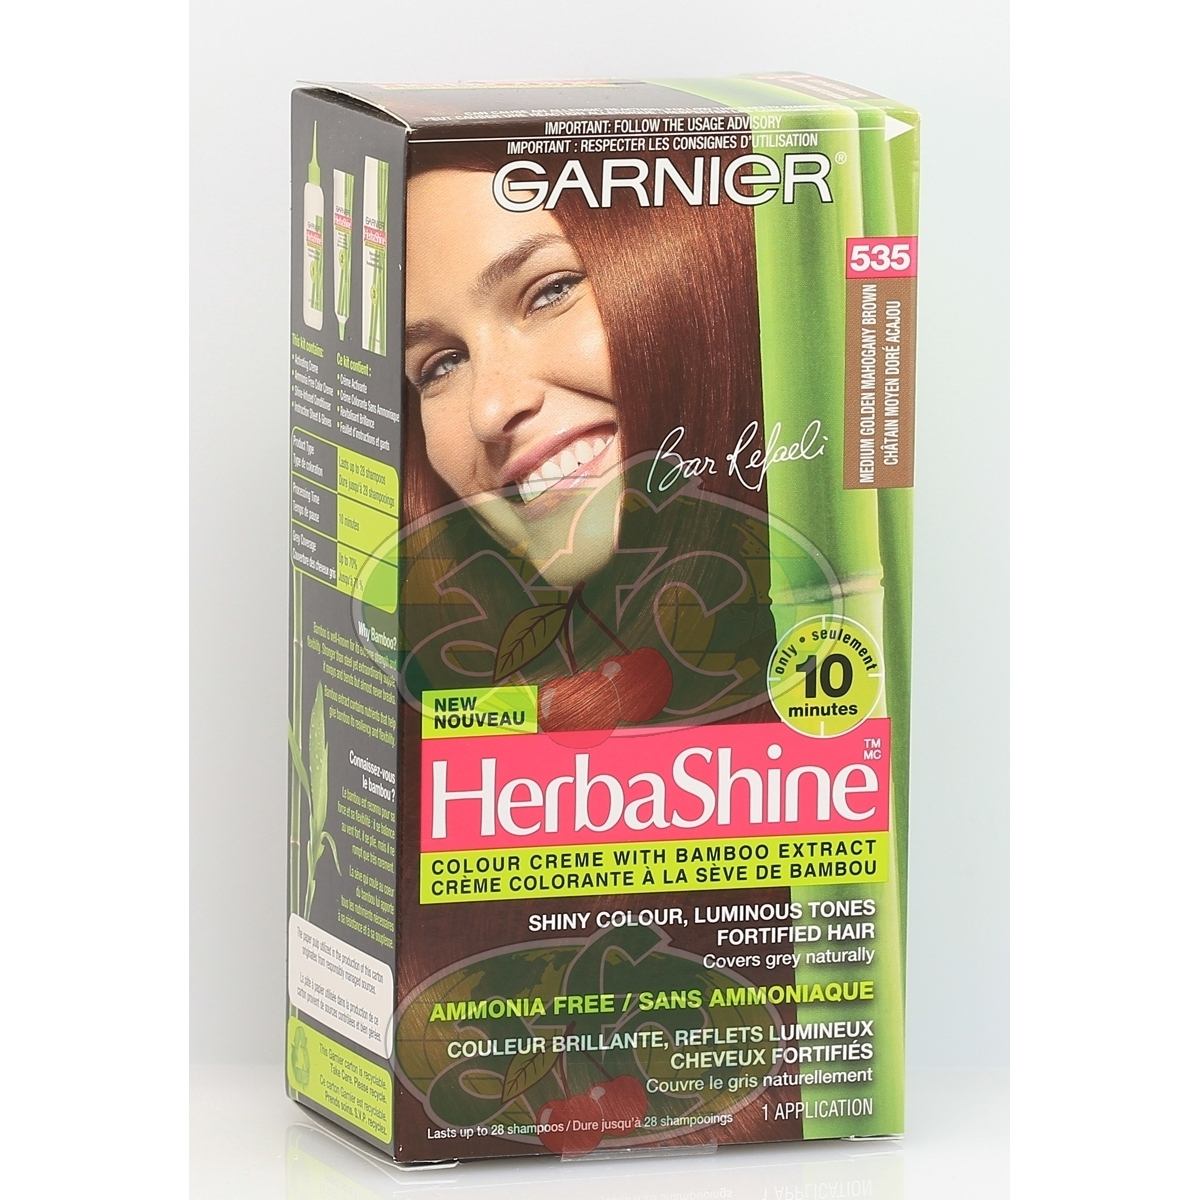 Garnier 535 Herbashine Hair Colour Garnier 535 Herbashine Hair